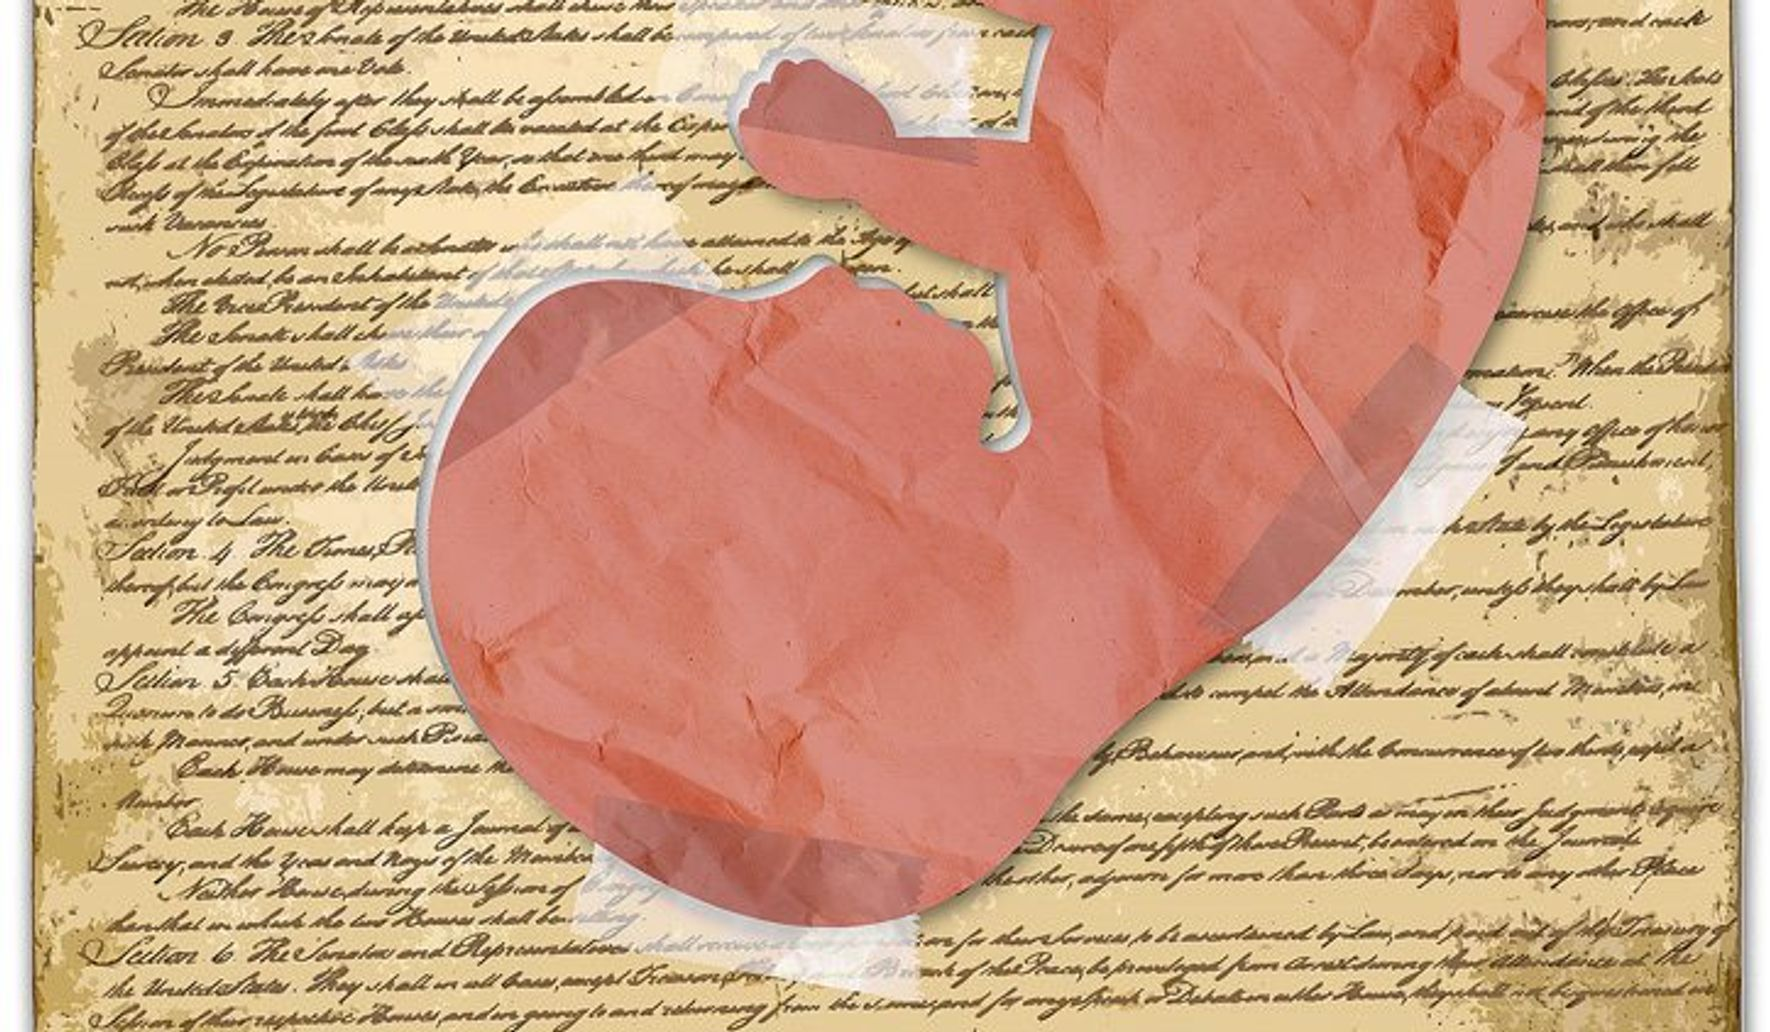 Roe v. Wade on the fault line